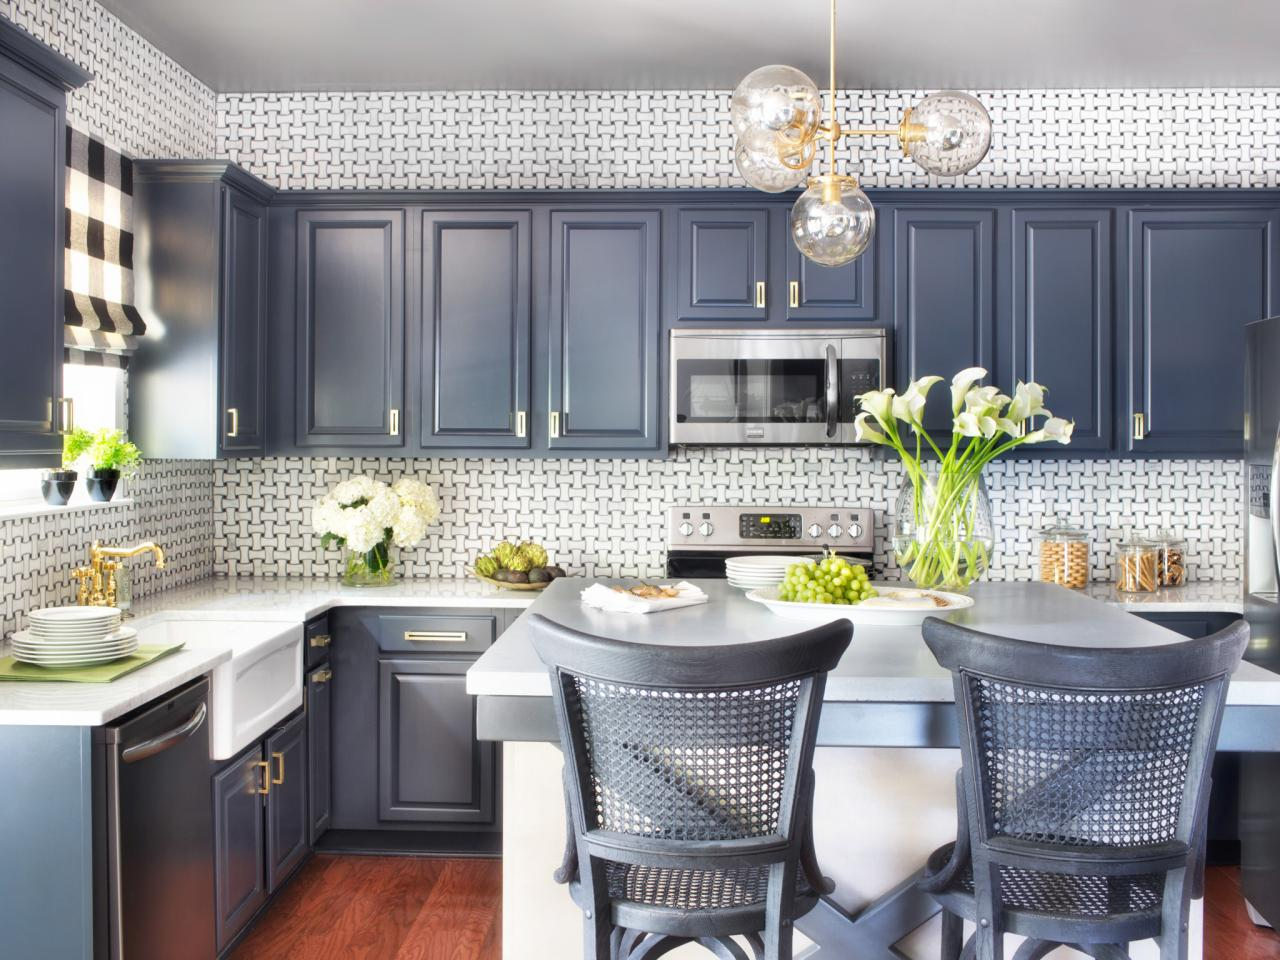 6 Helpful Tips for Upgrading Your Kitchen on a Budget - New Paint Job on Cabinets